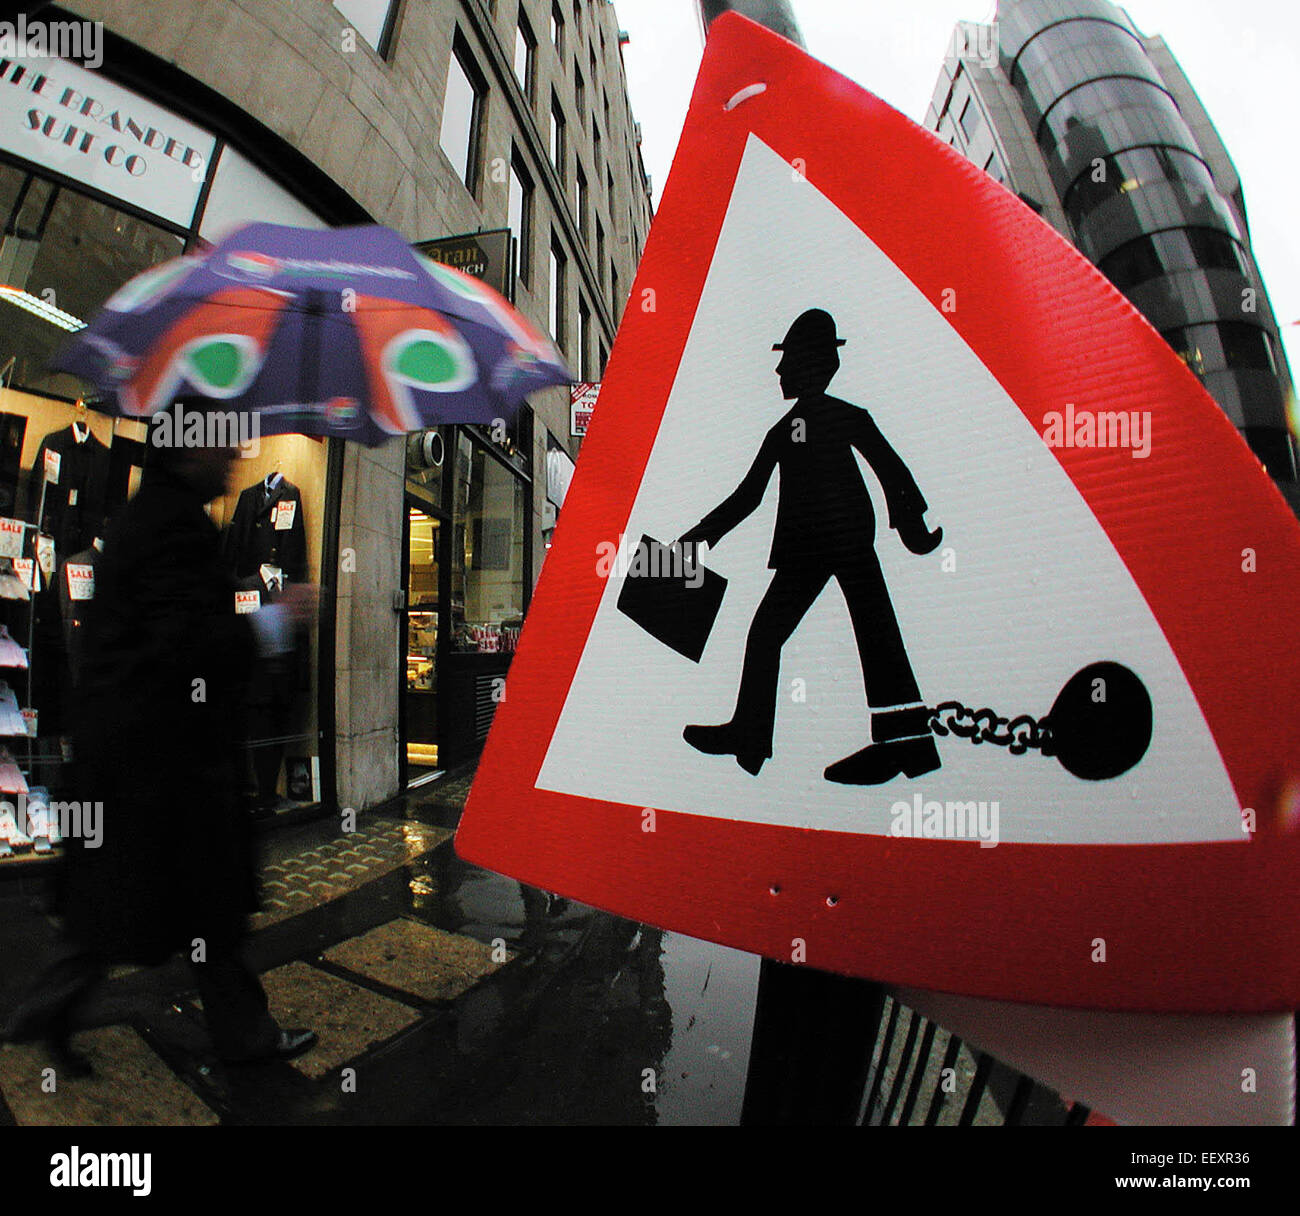 hoax street sign depicting wage slave city office worker trapped imprisoned in ball and chain Cannon Street  London - Stock Image